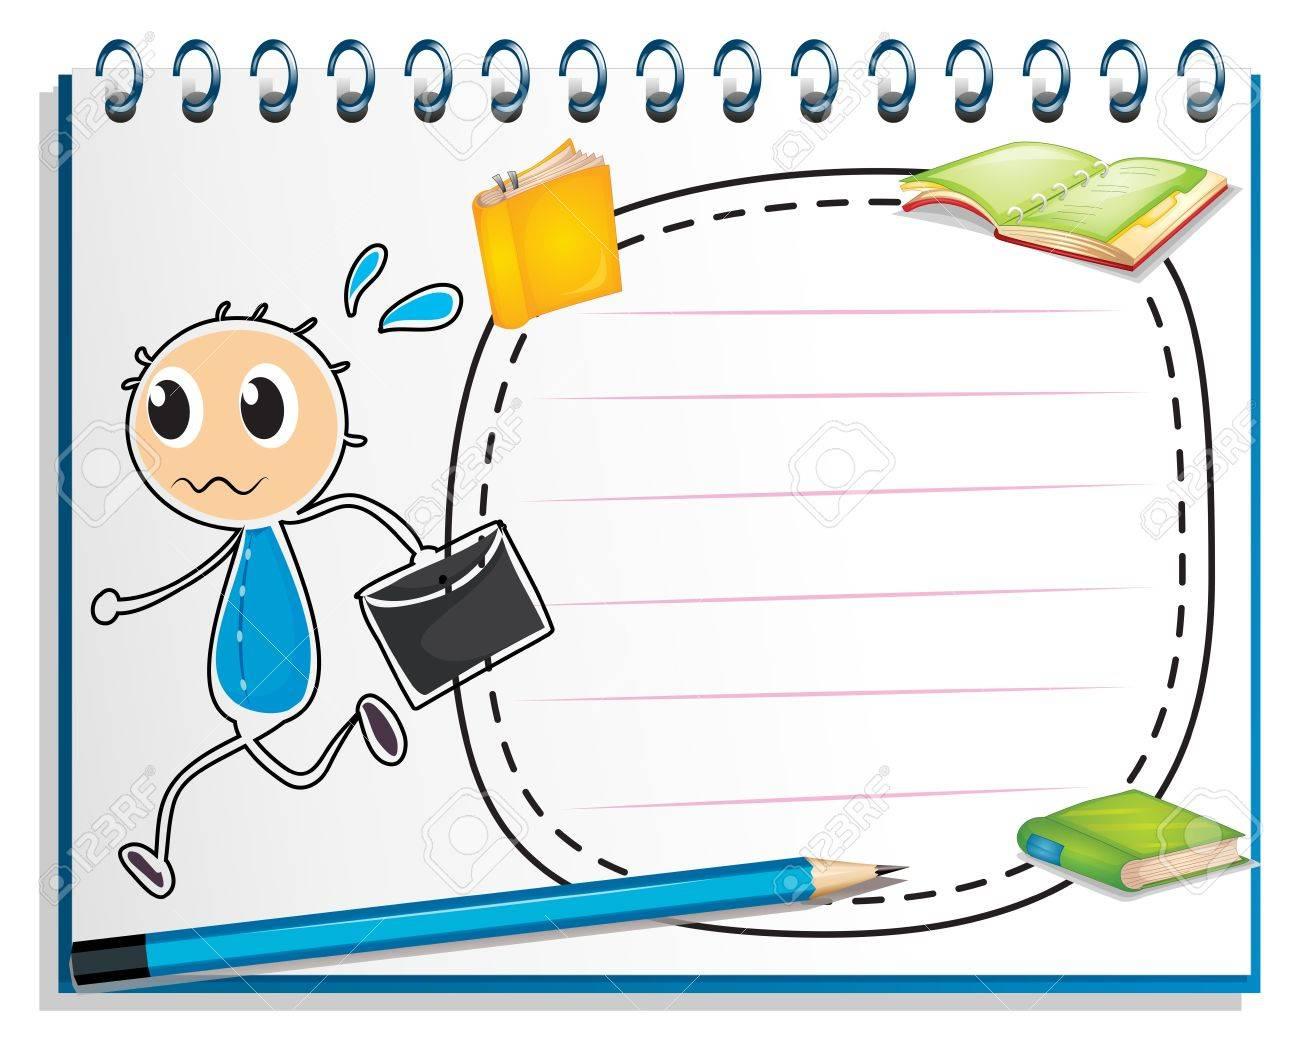 Illustration of a notebook with a drawing of a boy holding an envelope on a white background Stock Vector - 19645239